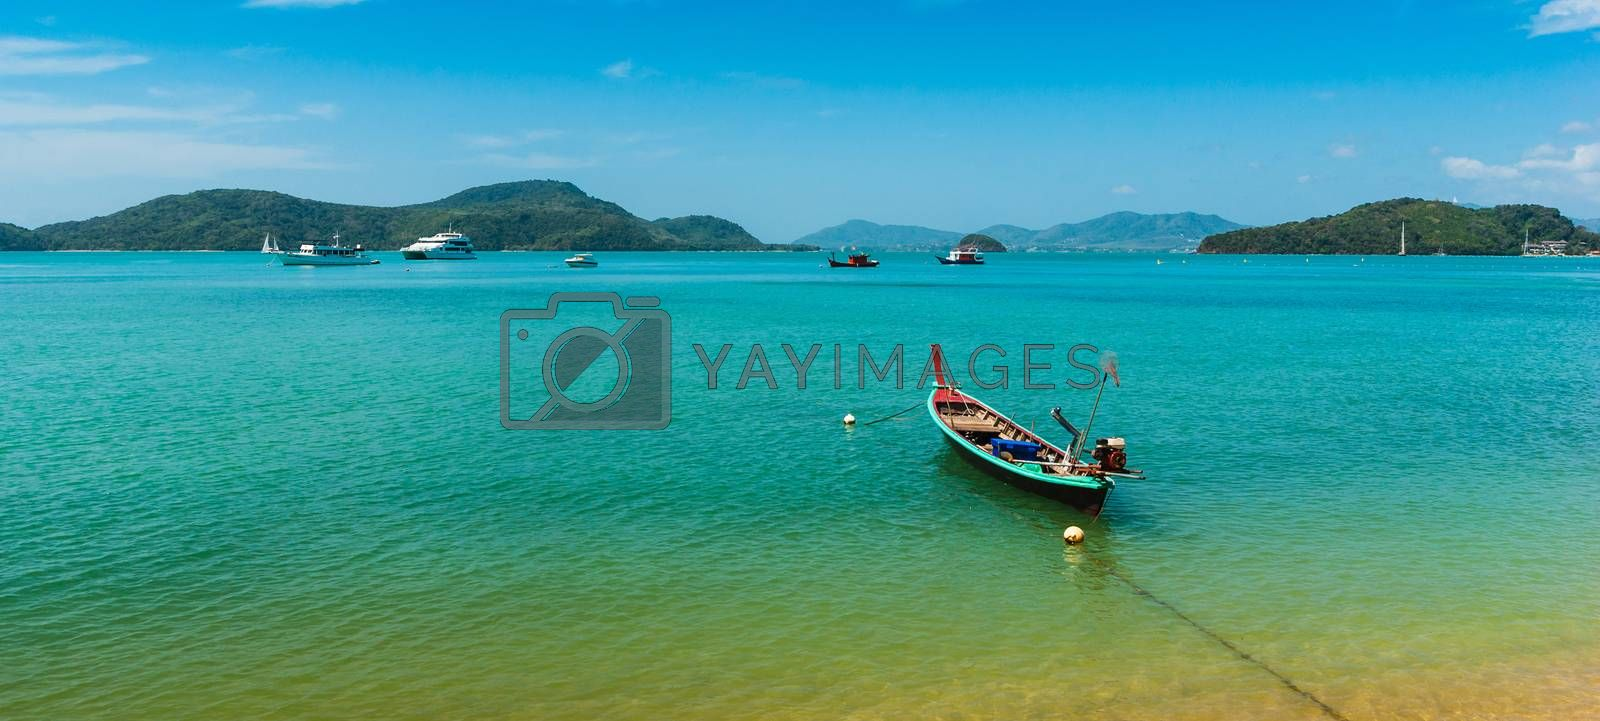 Royalty free image of Boats at sea against the rocks in Thailand by oleg_zhukov